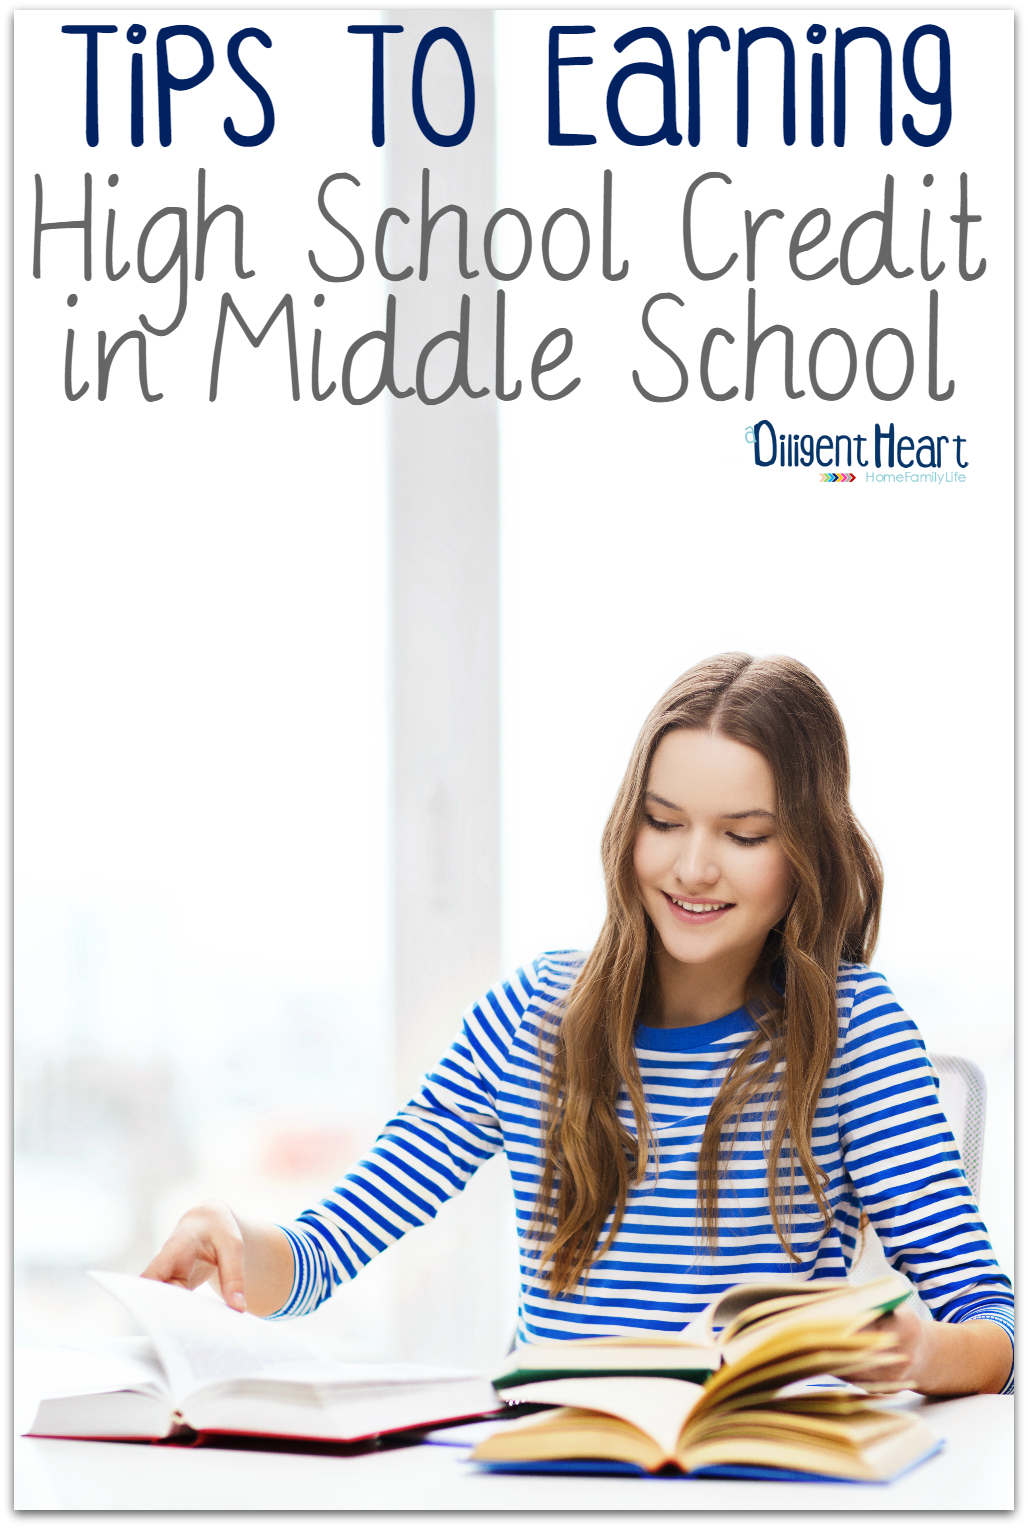 So you want your middle schooler to start earning high school credit. Or, maybe your middle schooler has asked if they can. But, you're not sure how that works or even how to know if it's doable. It's very simple, probably more than you think, I promise. In this post, I'm sharing a few things to help you get going in the right direction.